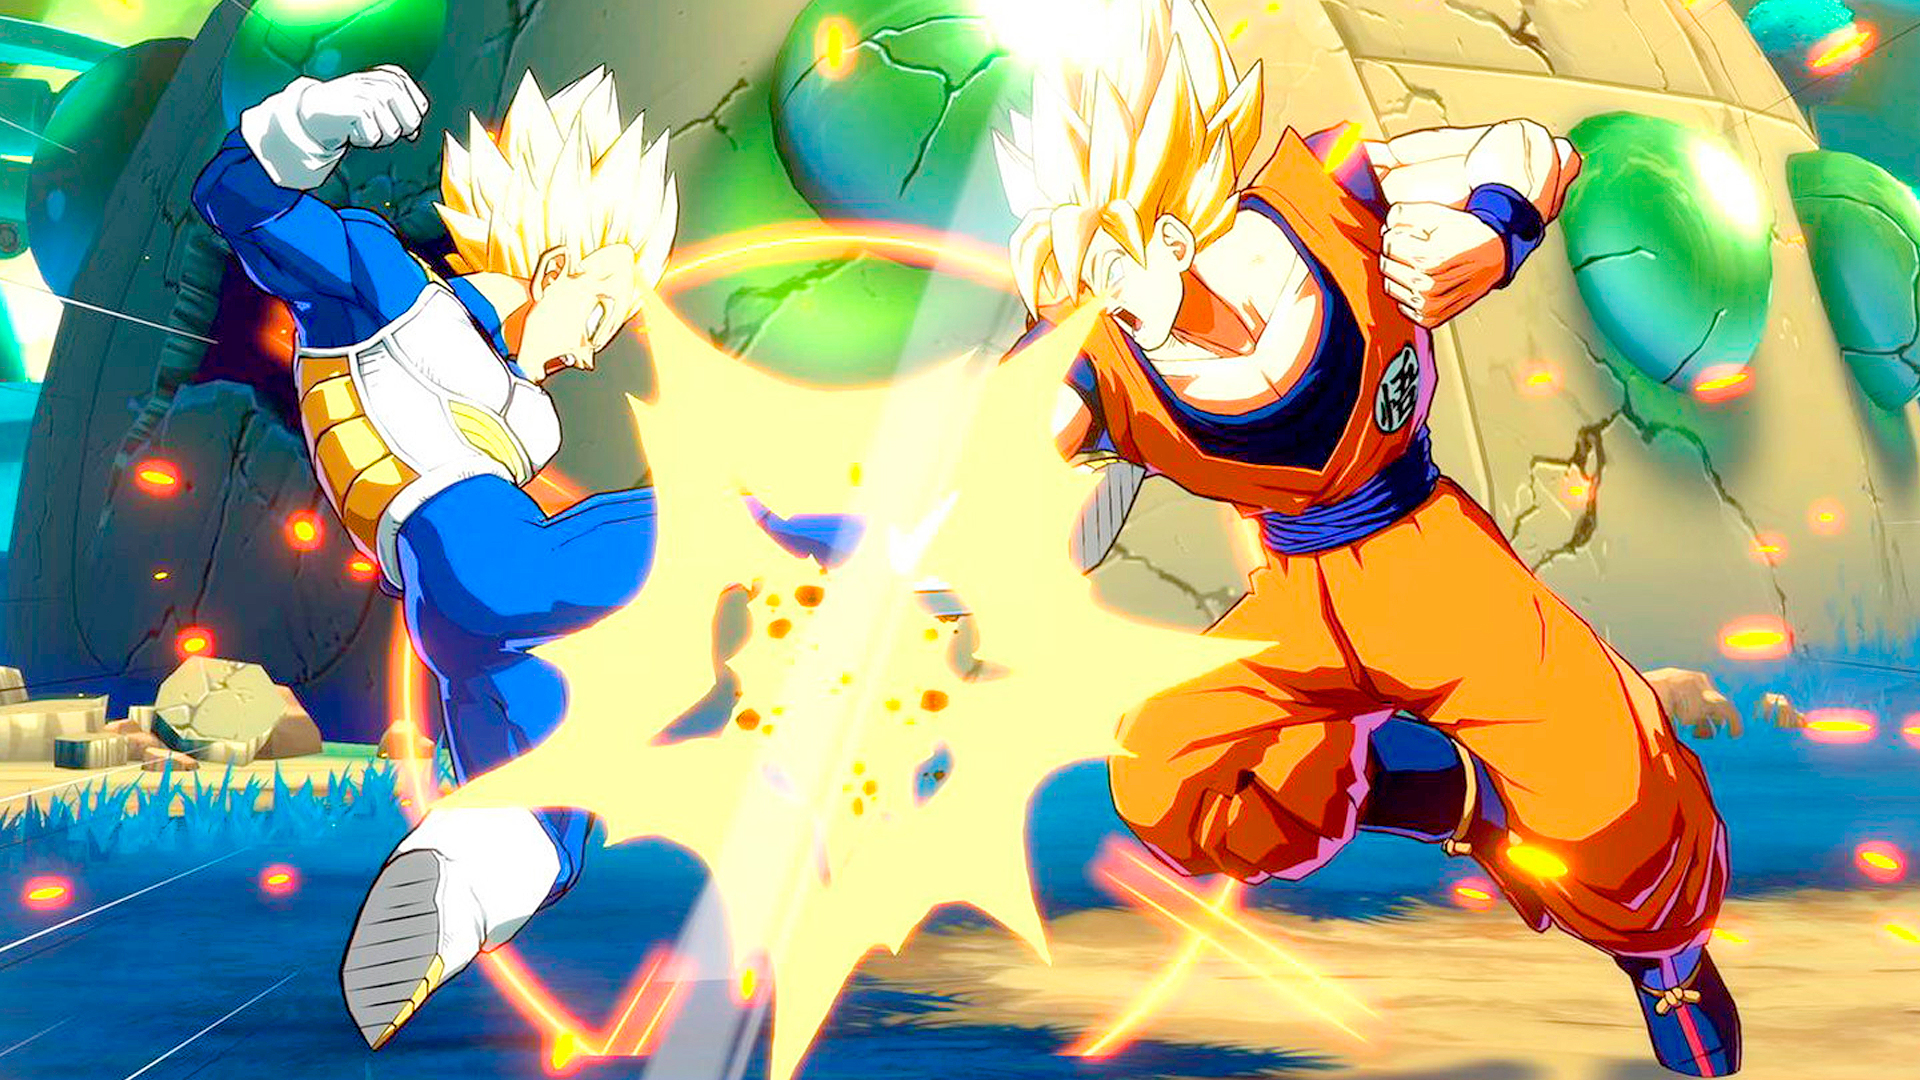 Dragon ball fighter z tendr torneo en el evo 2017 for Chambre dragon ball z